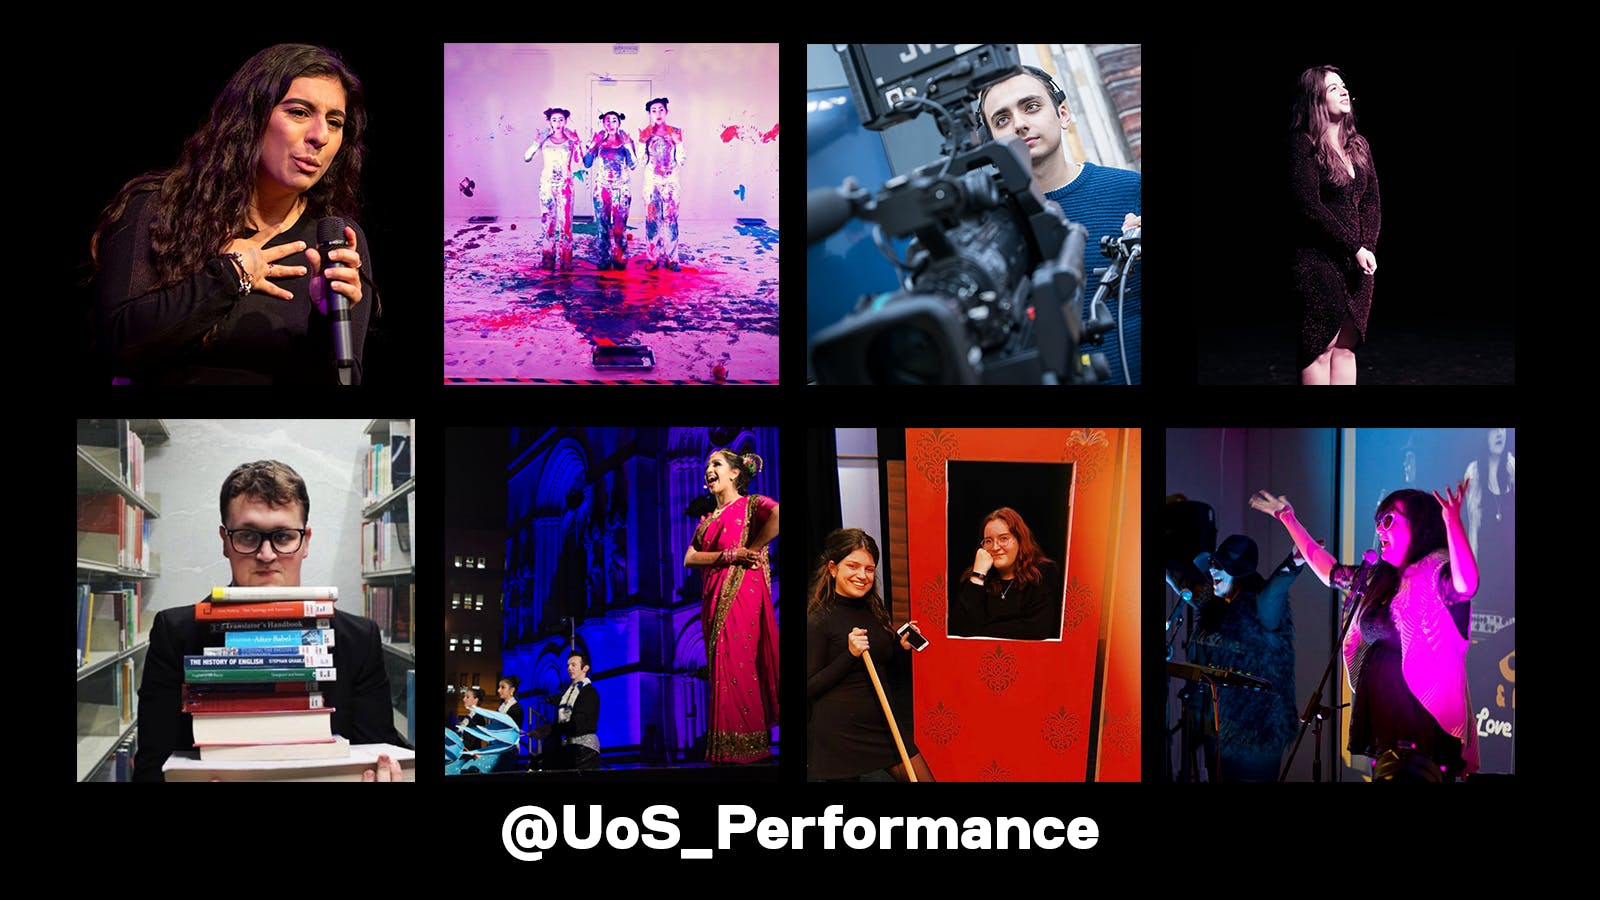 Performance Instagram Launch: Join our Creative Community